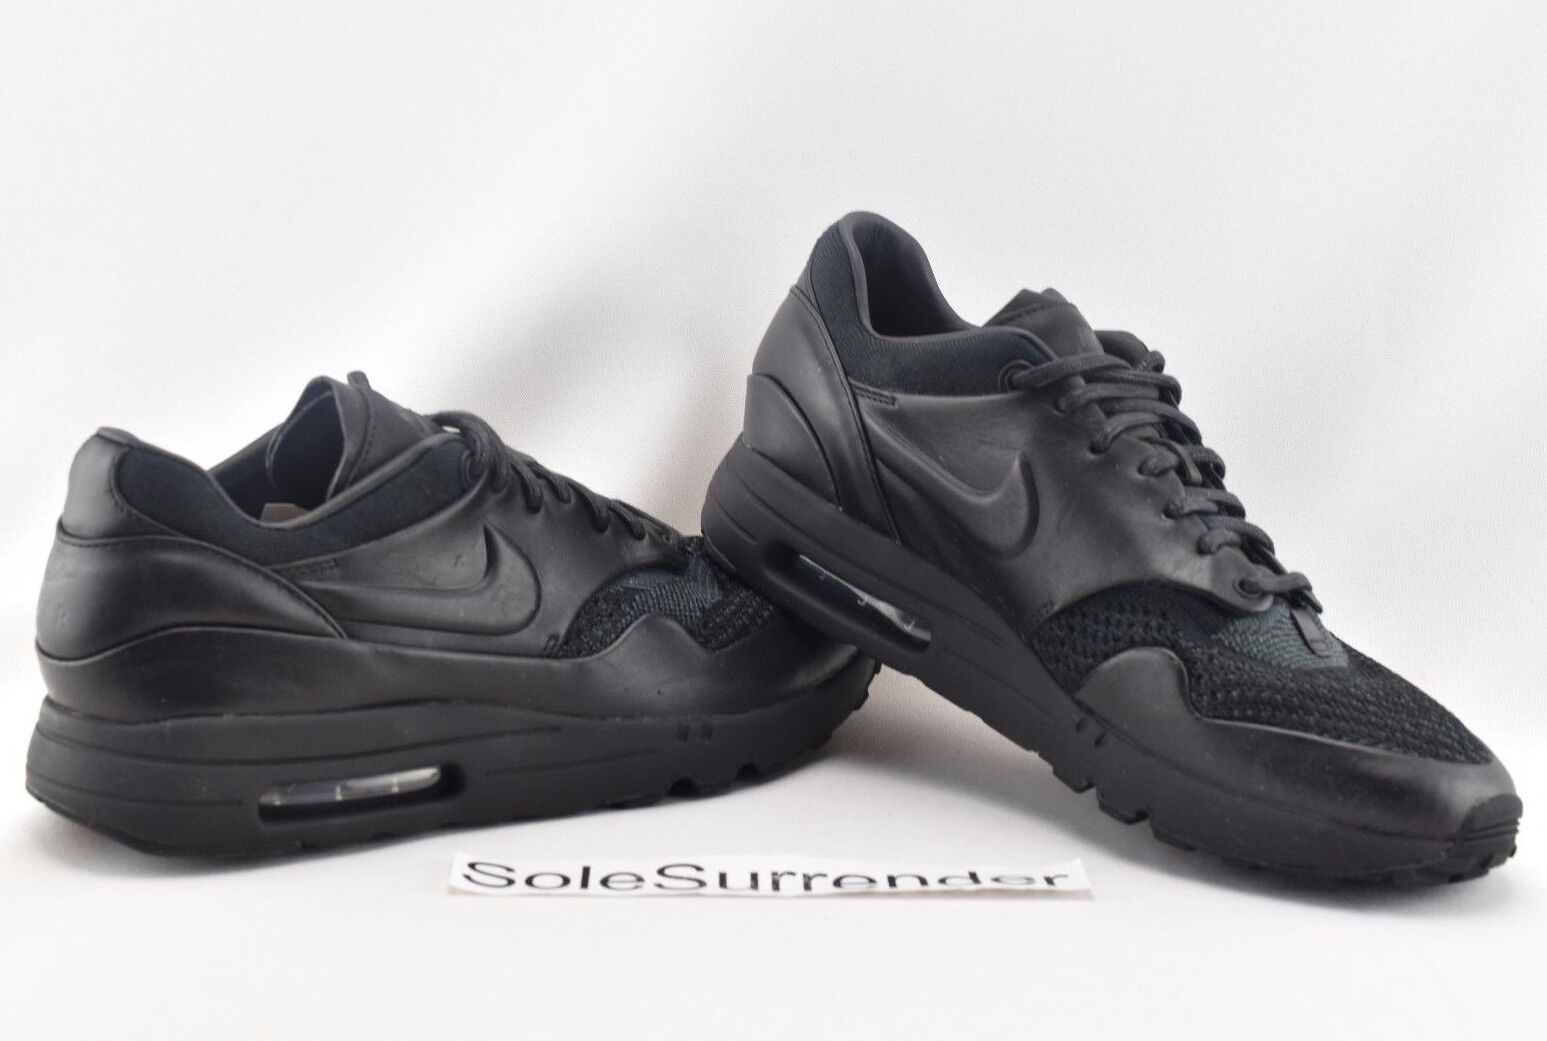 Nike X Arthur Huang Air Max 1 Flyknit Royal -SIZE 8 - 923005-001 Triple Blackout